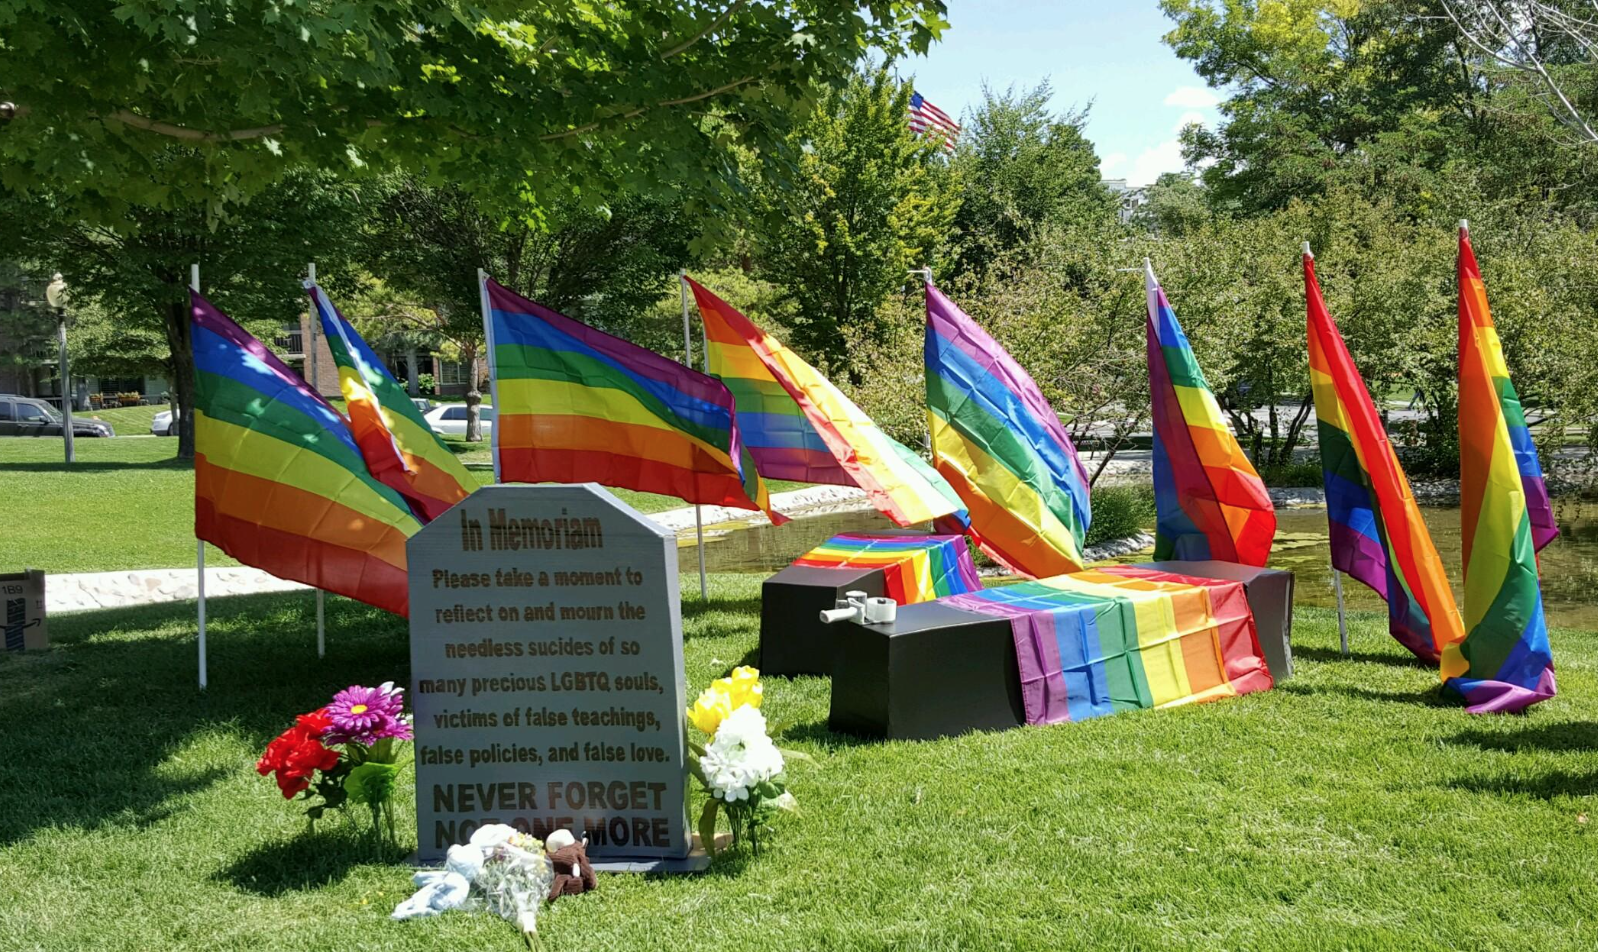 This memorial was set up in honor of LGBTQ church members who reportedly committed suicide because the LDS Church had no place for them, organizers said. Photo: Gephardt Daily/Nancy Van Valkenburg